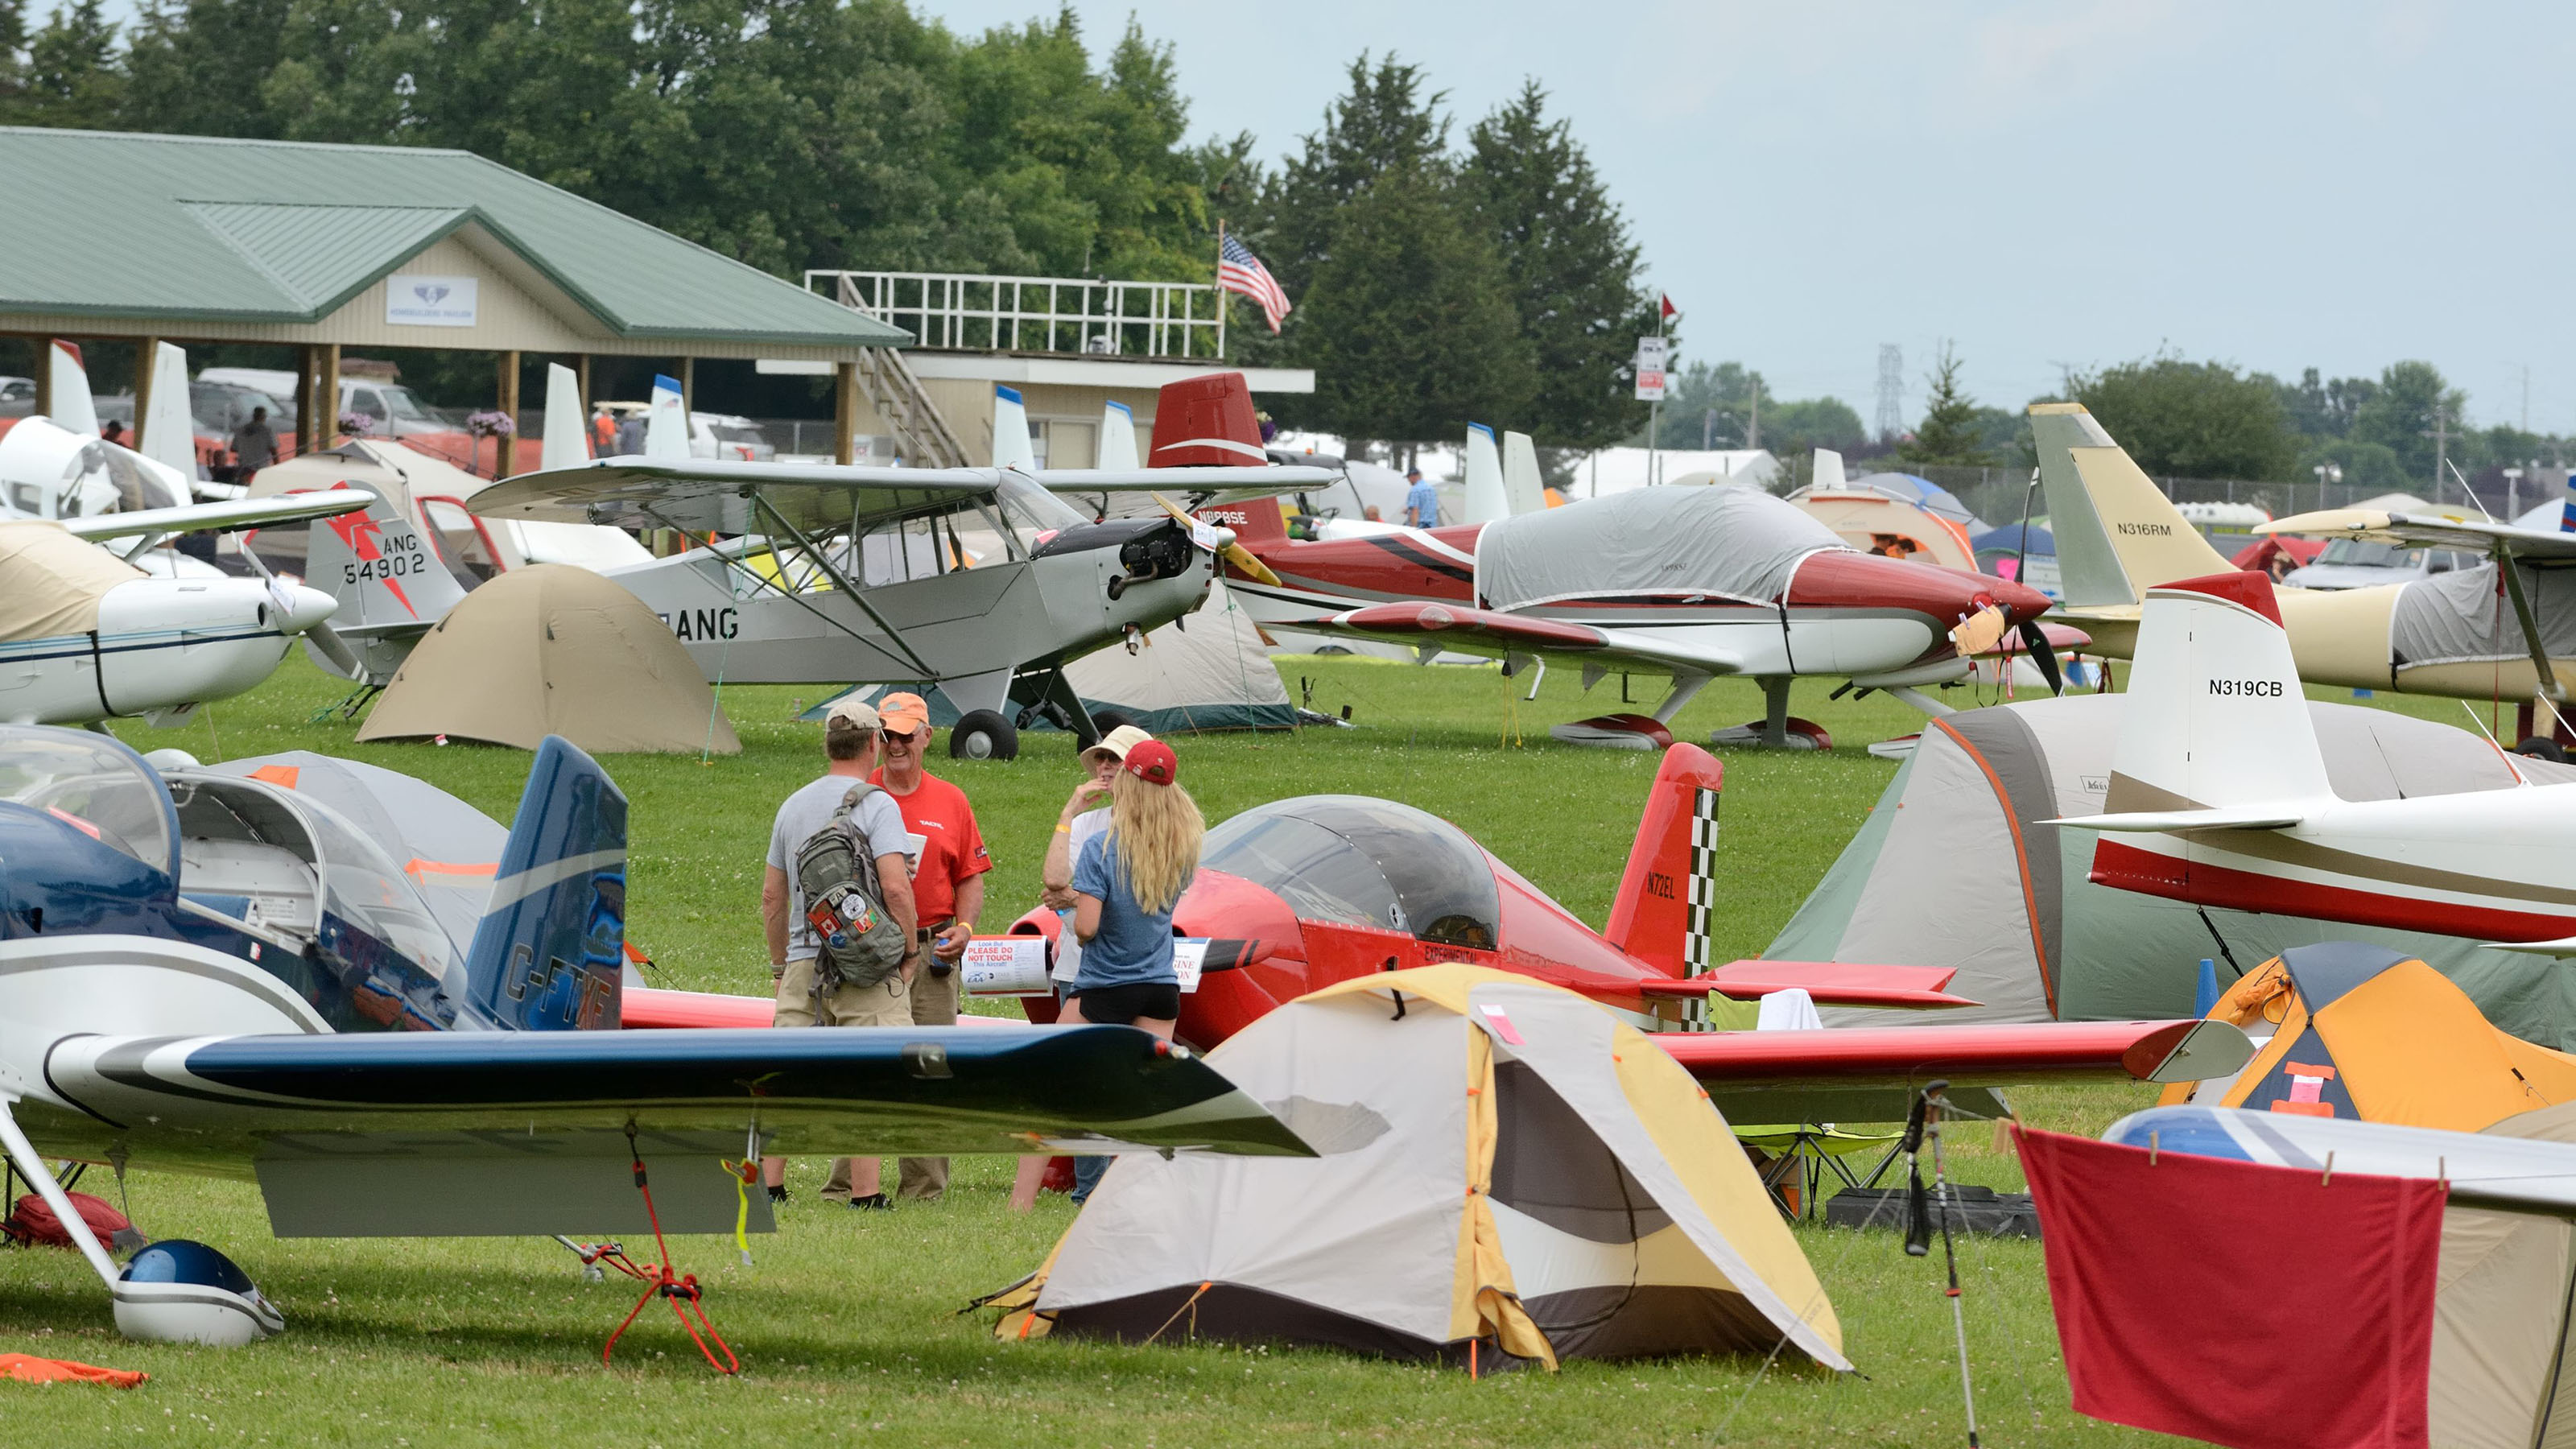 As EAA AirVenture 2017 spools up, attendees talk in one of the aircraft campgrounds. Photo by Mike Collins.